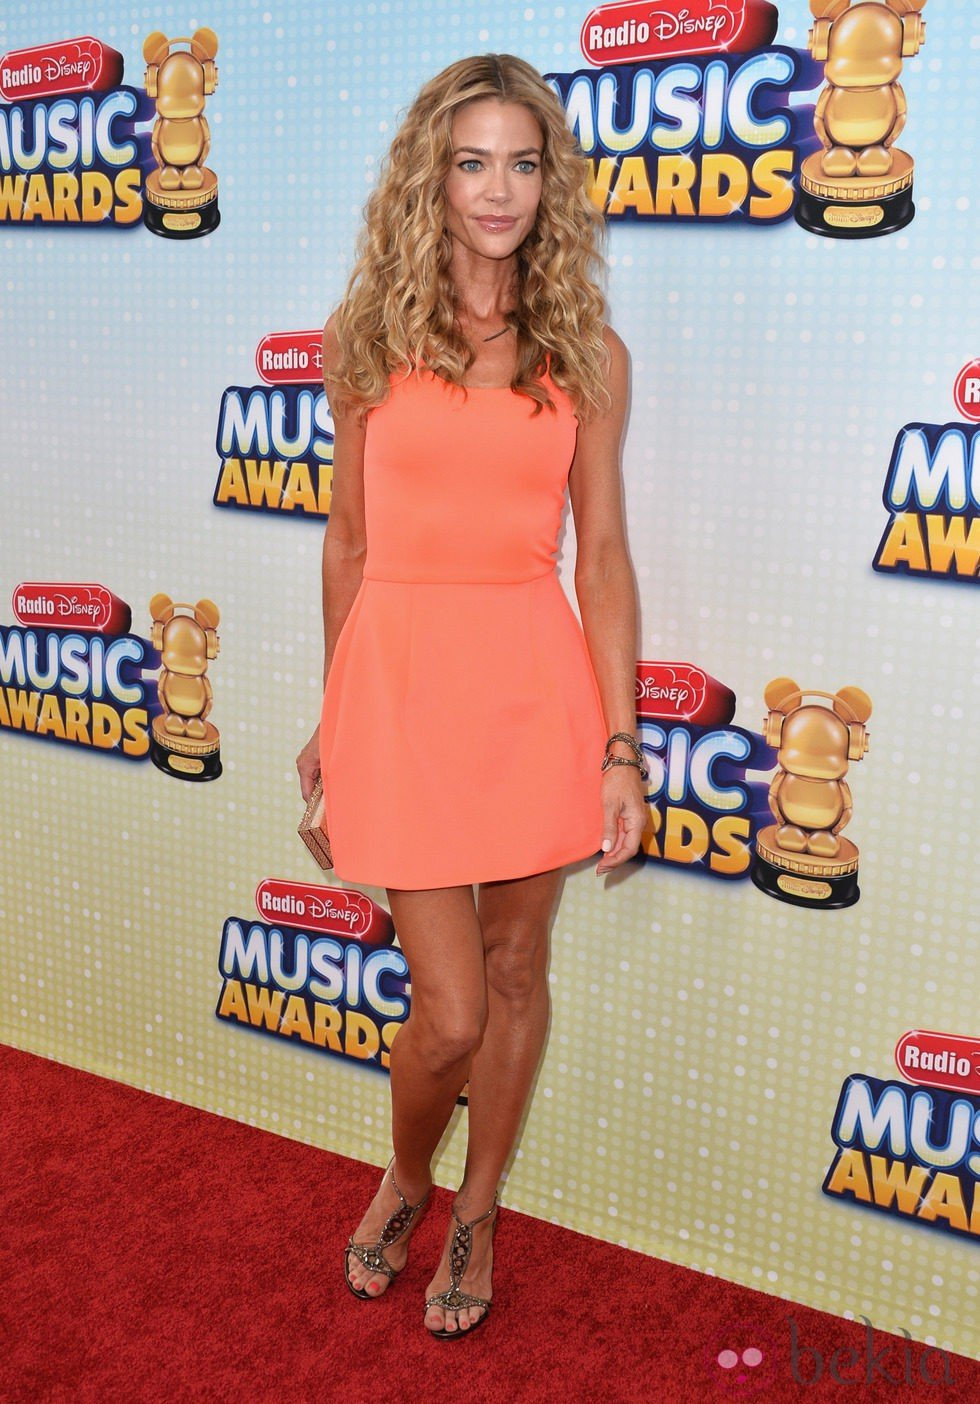 Denise Richards en los Radio Disney Music Awards 2013